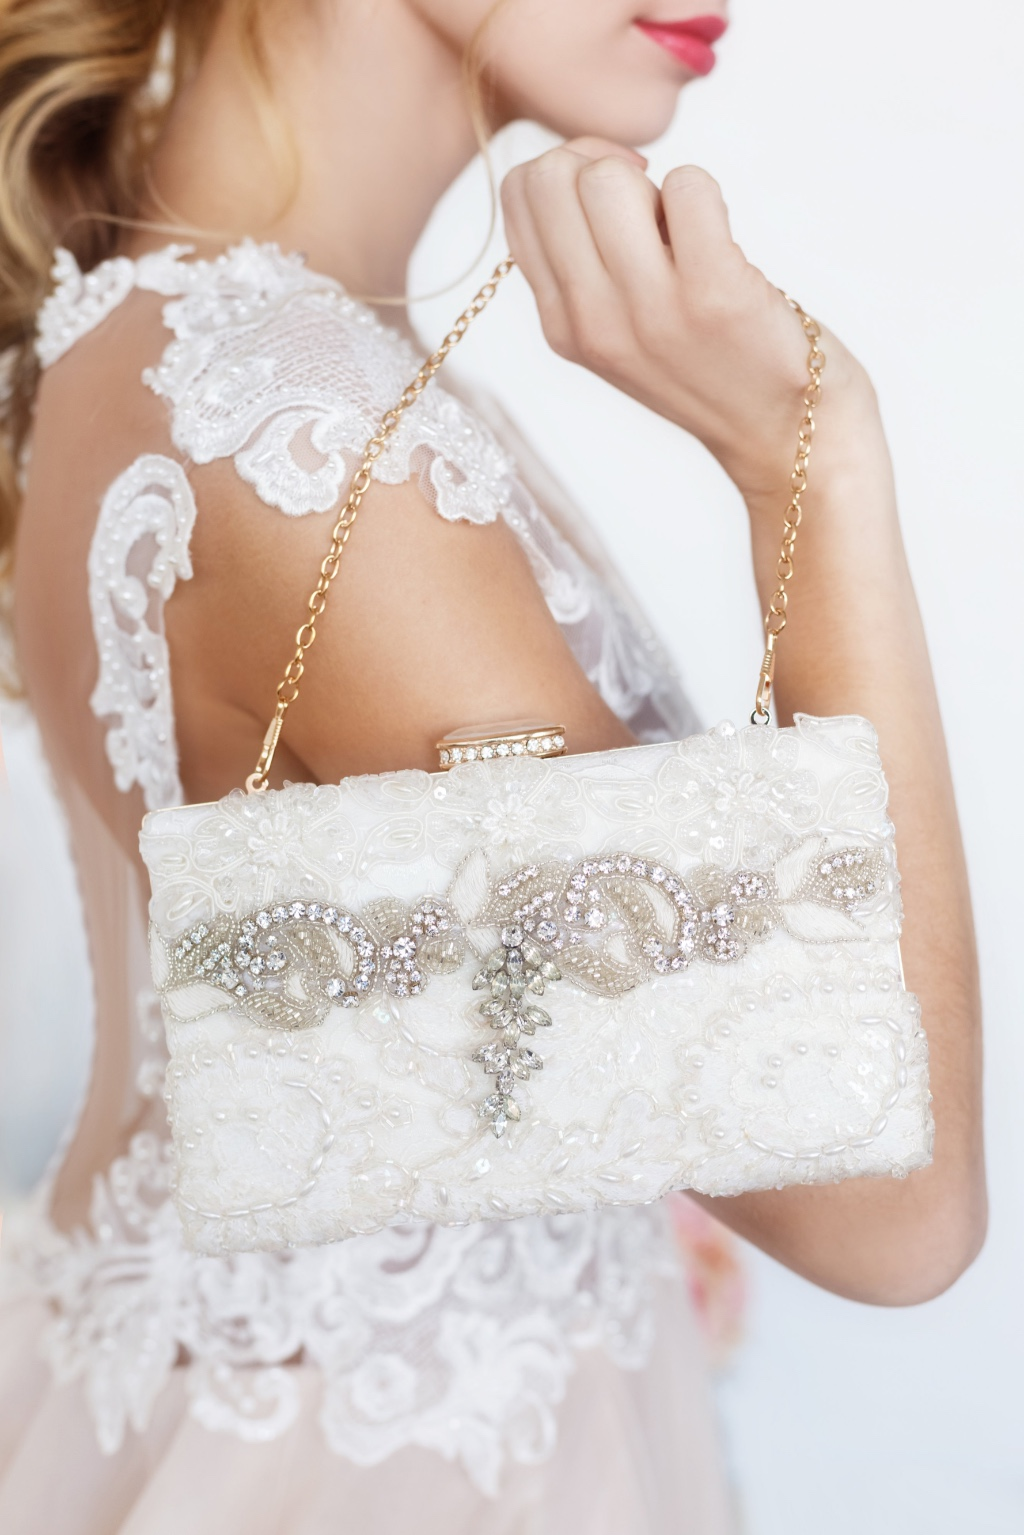 Walk into your wedding with a gorgeous one of a kind bridal clutch